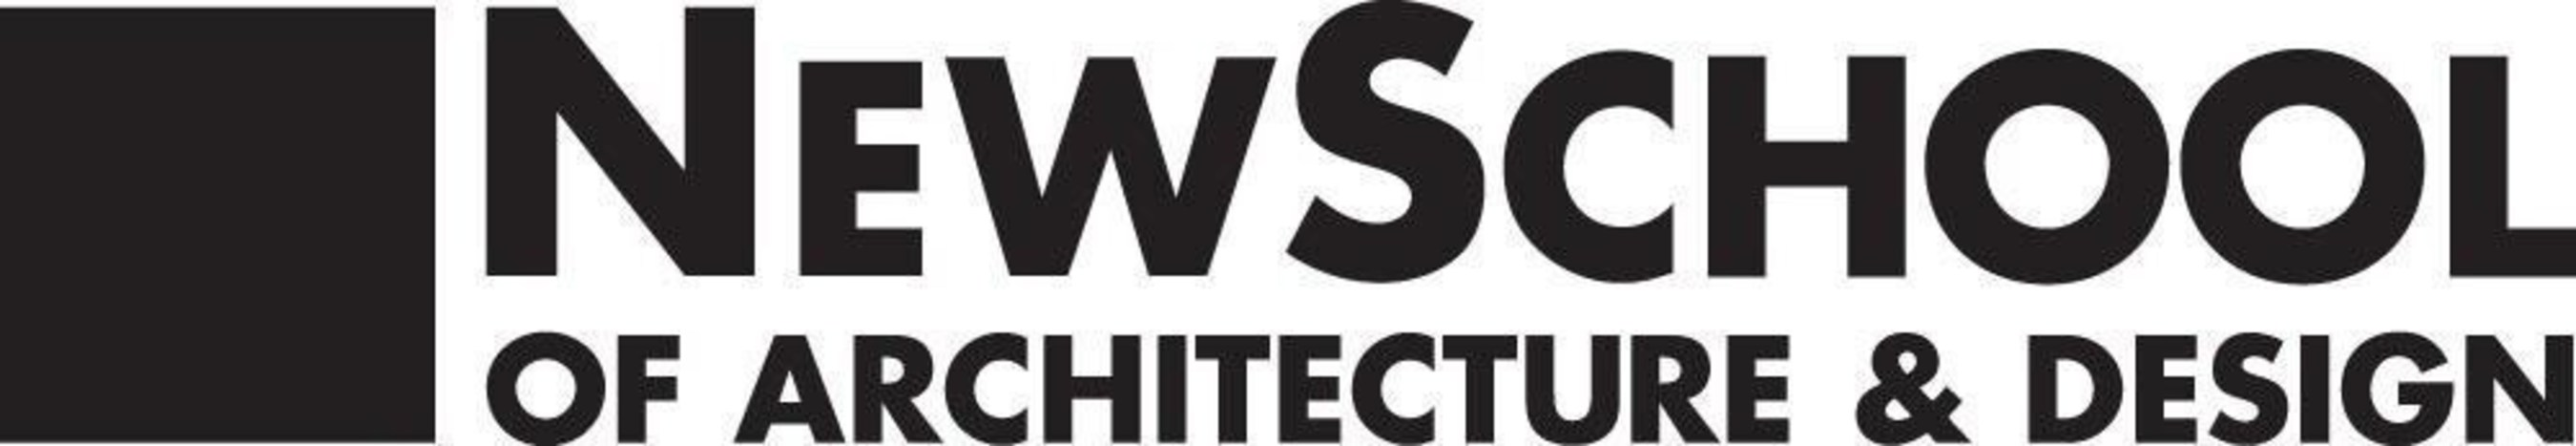 Located in downtown San Diego, NewSchool prepares students for career success in design fields through an emphasis on interdisciplinary and global design skills, industry collaborations and real-world projects. Programs of study include architecture, construction management, product design, media design, game development, and interior architecture & design. NewSchool is accredited by the Western Association of Schools and Colleges (WASC) Senior College and University Commission. ...